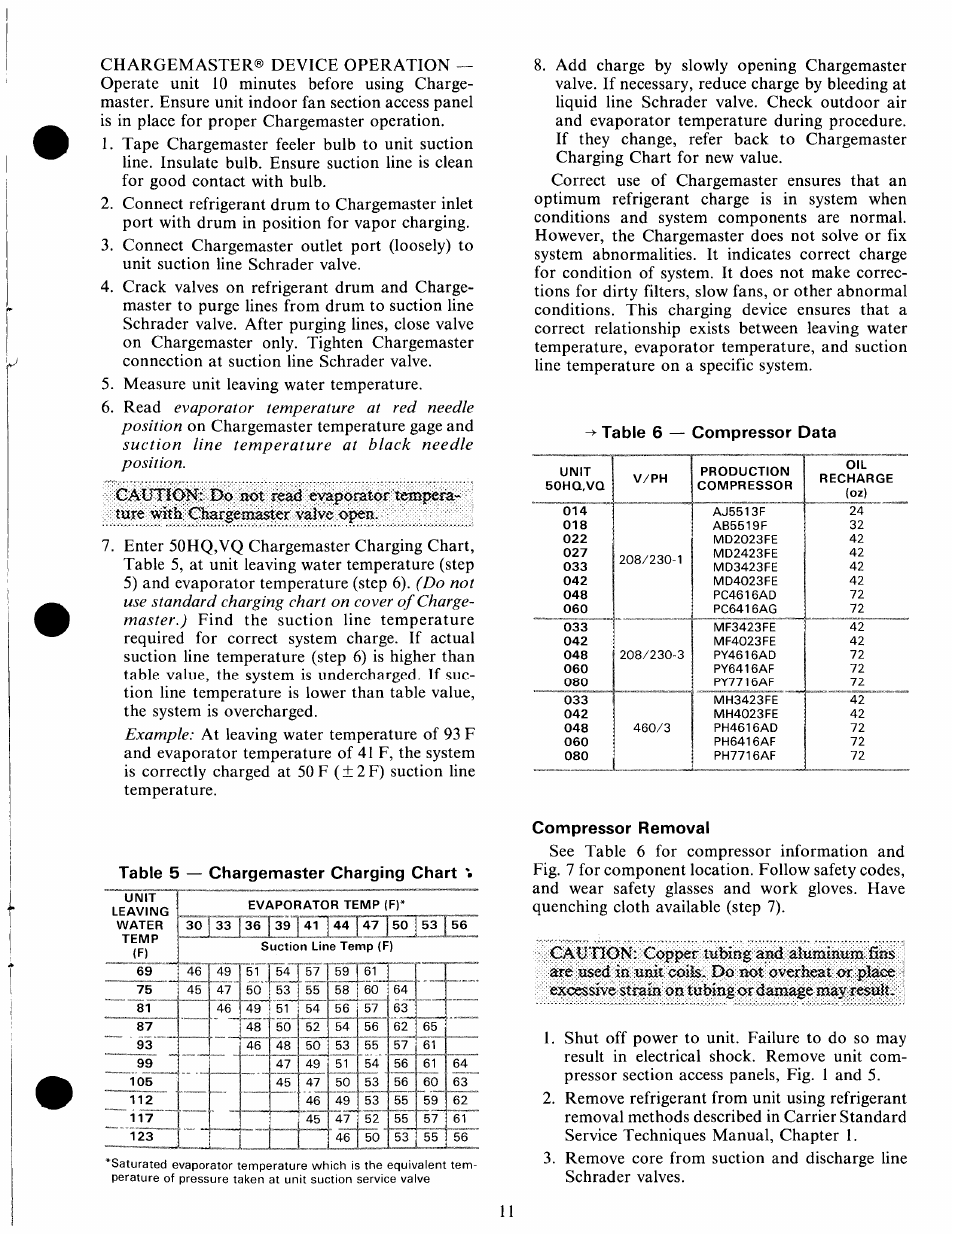 compressor removal carrier 50hq user manual page 11 14 rh manualsdir com carrier standard service techniques manual chapter 1 Carrier 48Tm016